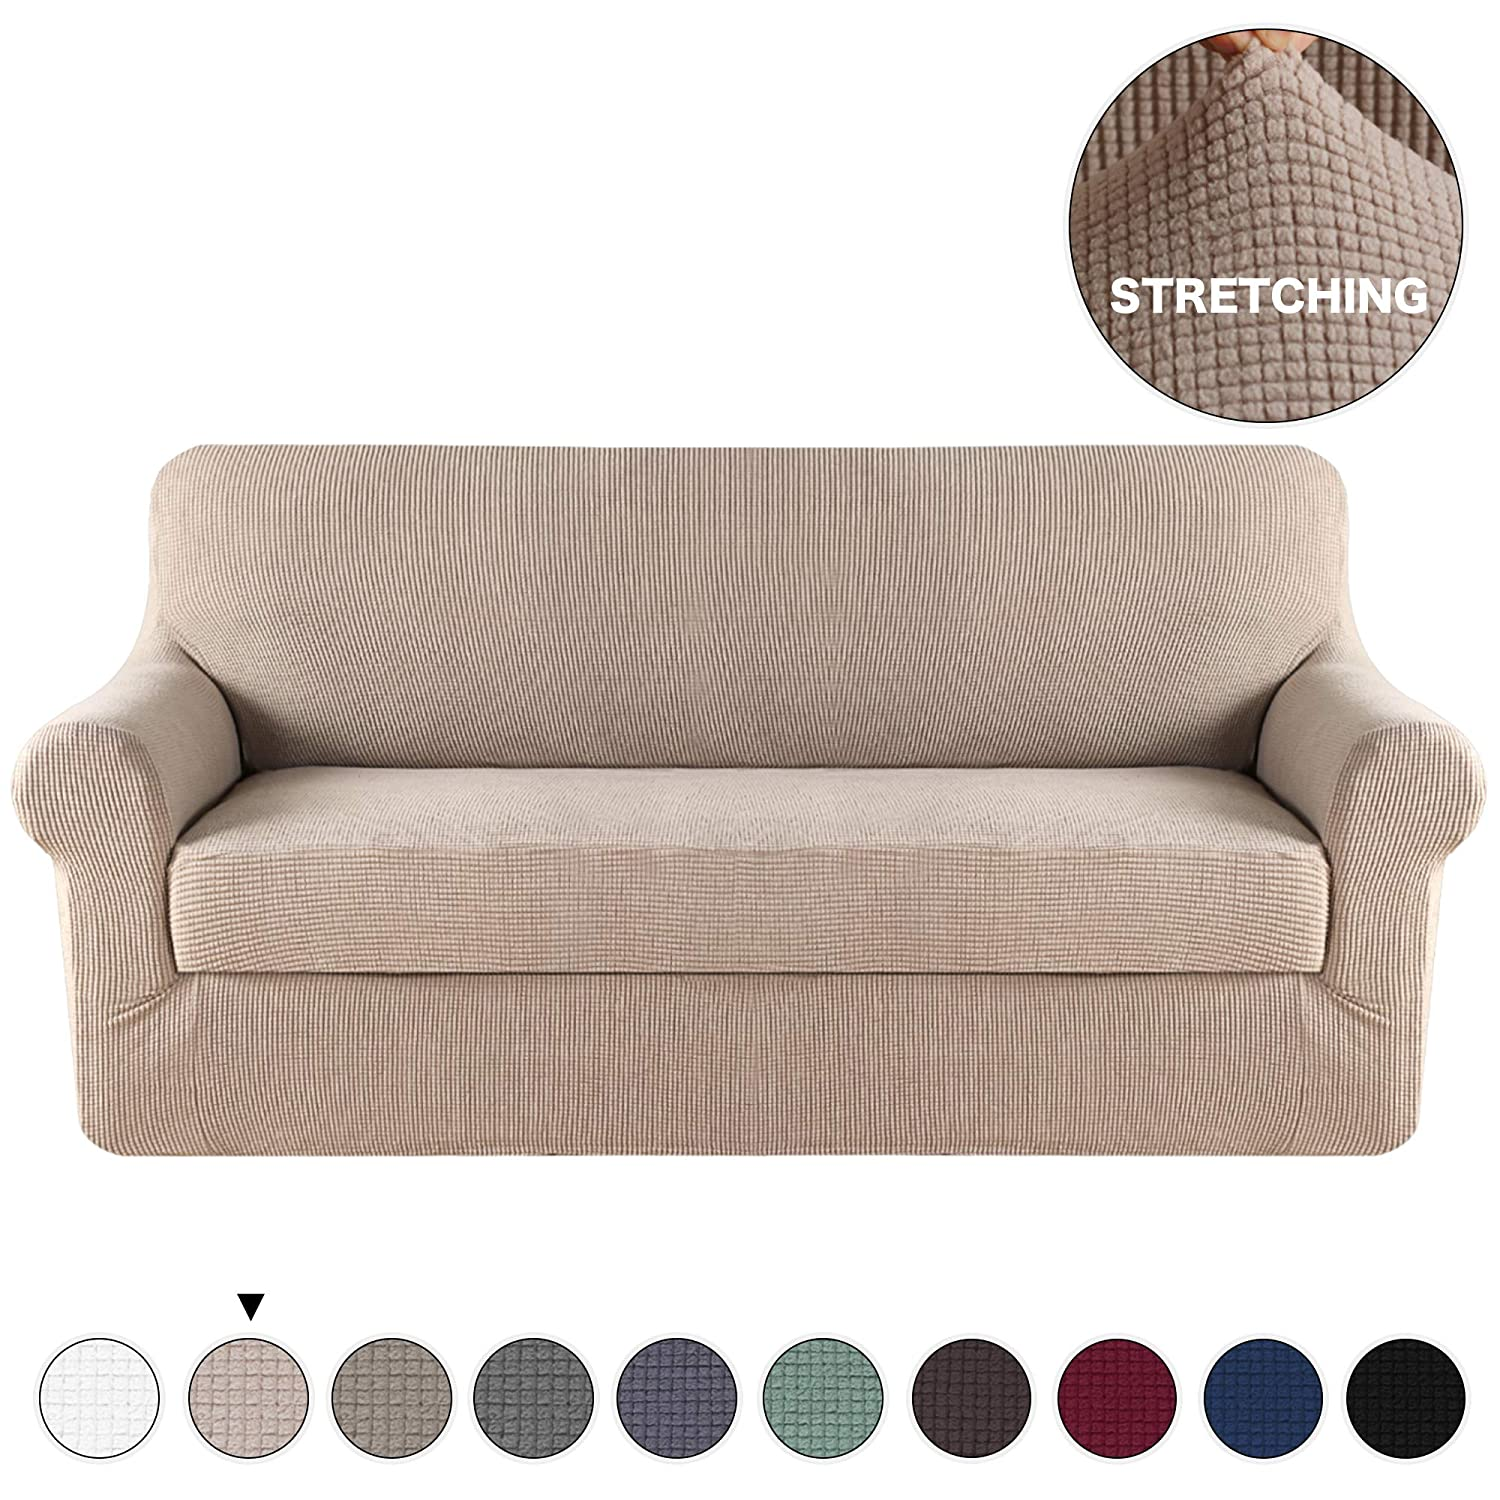 Turquoize 2 Piece Couch Covers for Furniture Sofa Protector Cover, Khaki Spandex Slipcover/Lounge Cover, Slip Resistant Stylish Furniture Protector ...